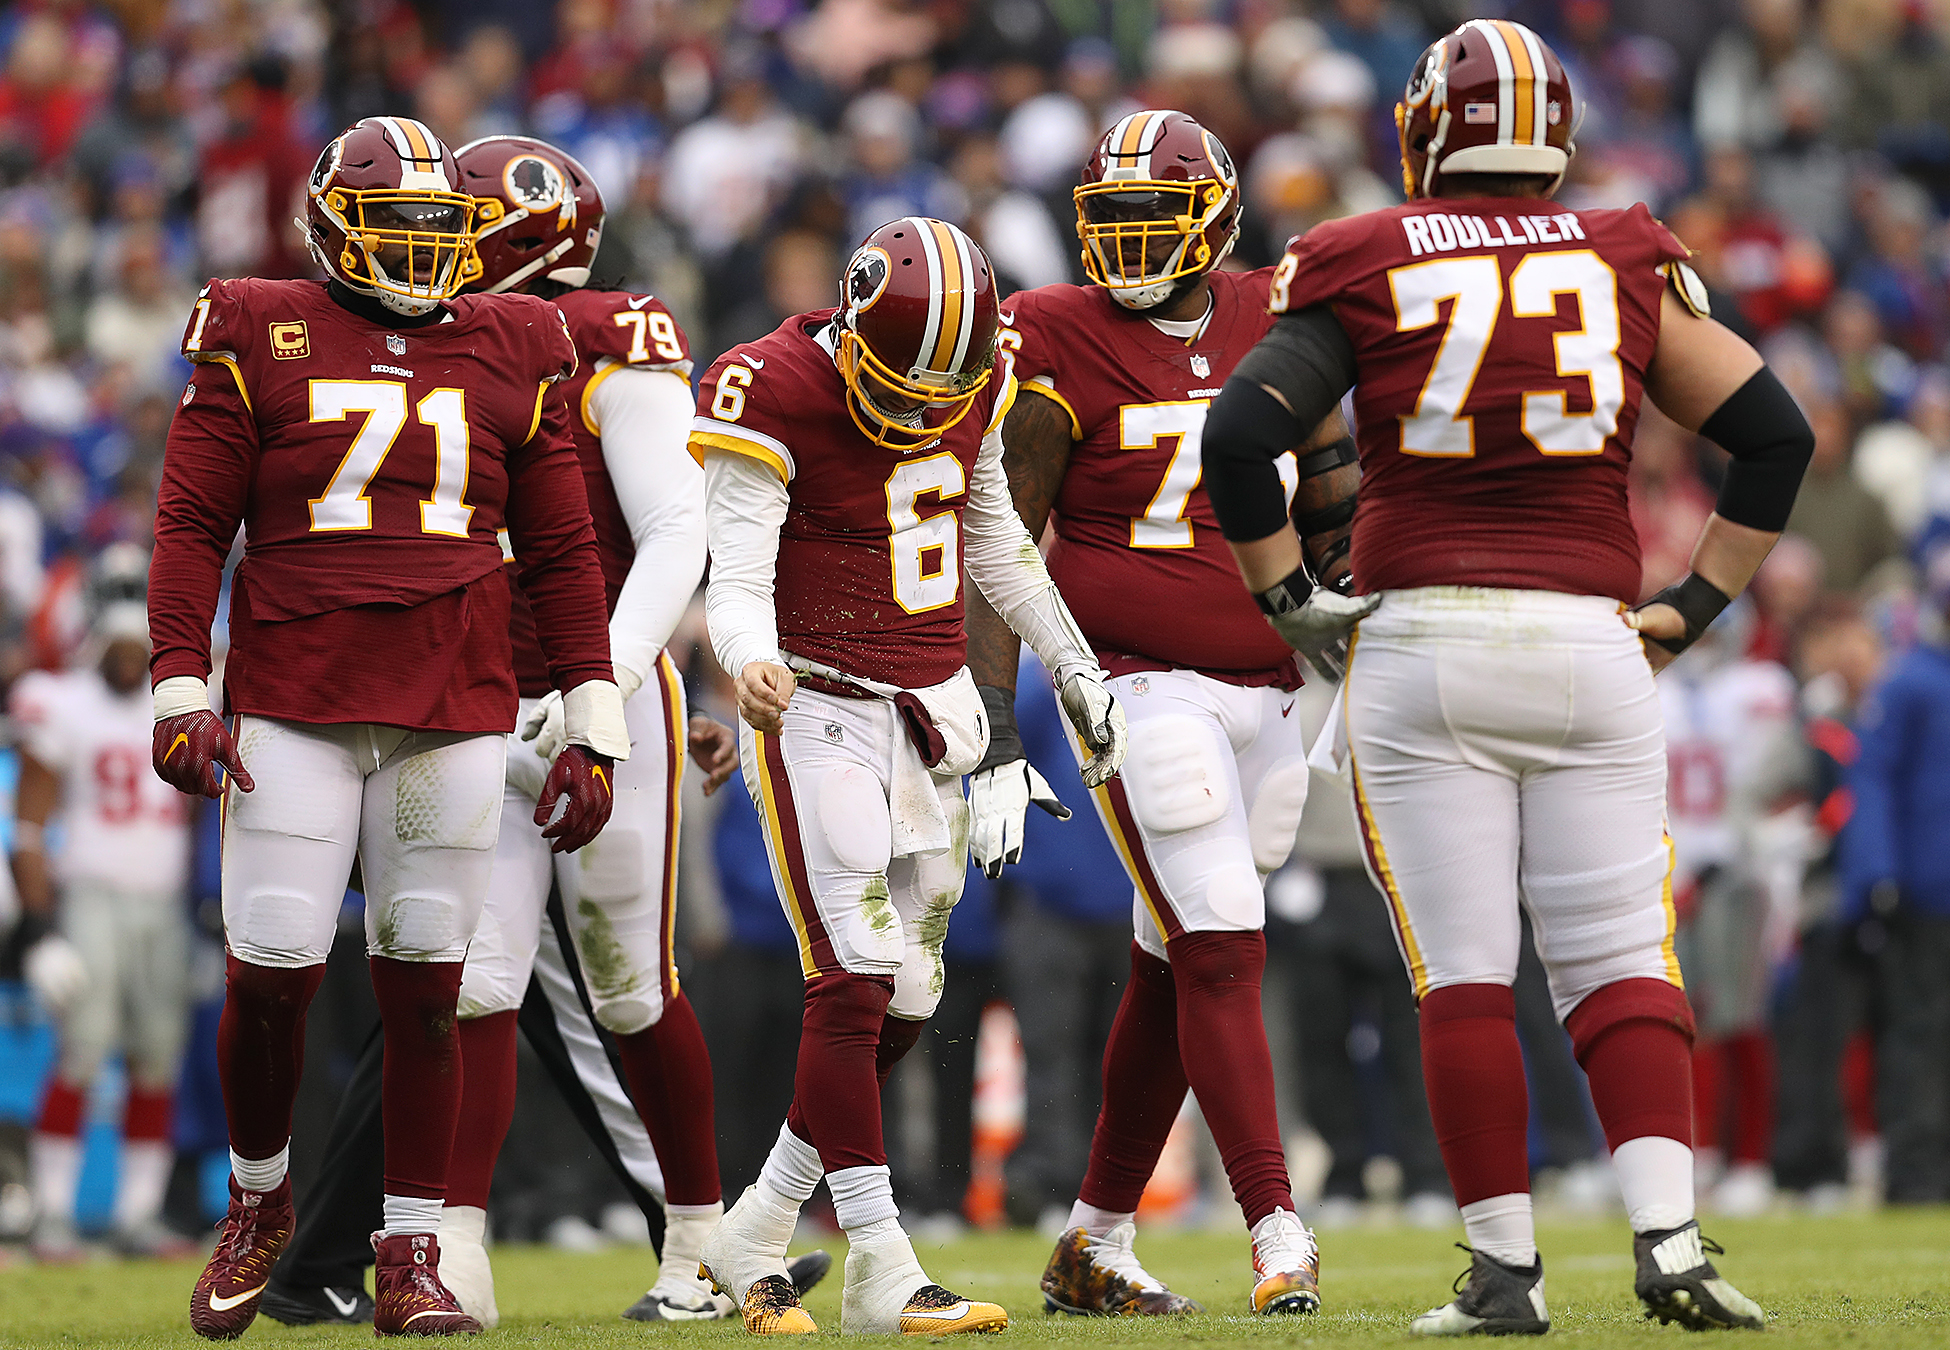 Quarterback Mark Sanchez of the Washington Redskins reacts after a sack in the second quarter against the New York Giants at FedExField on December 9, 2018 in Landover, Maryland. (Credit: Patrick Smith/Getty Images)